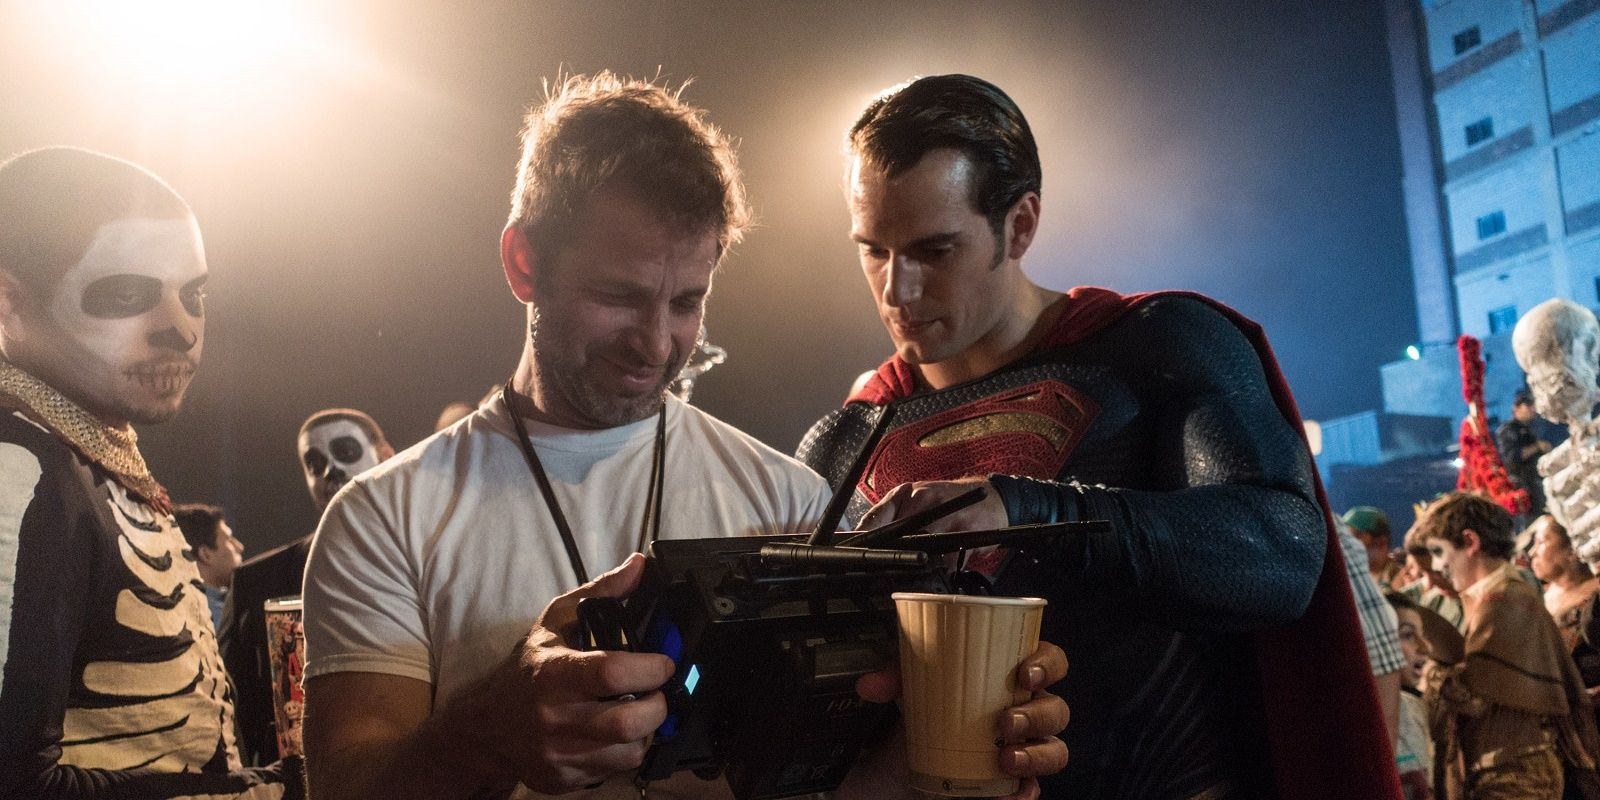 Watch Zack Snyder Skateboarding on Man of Steel Set